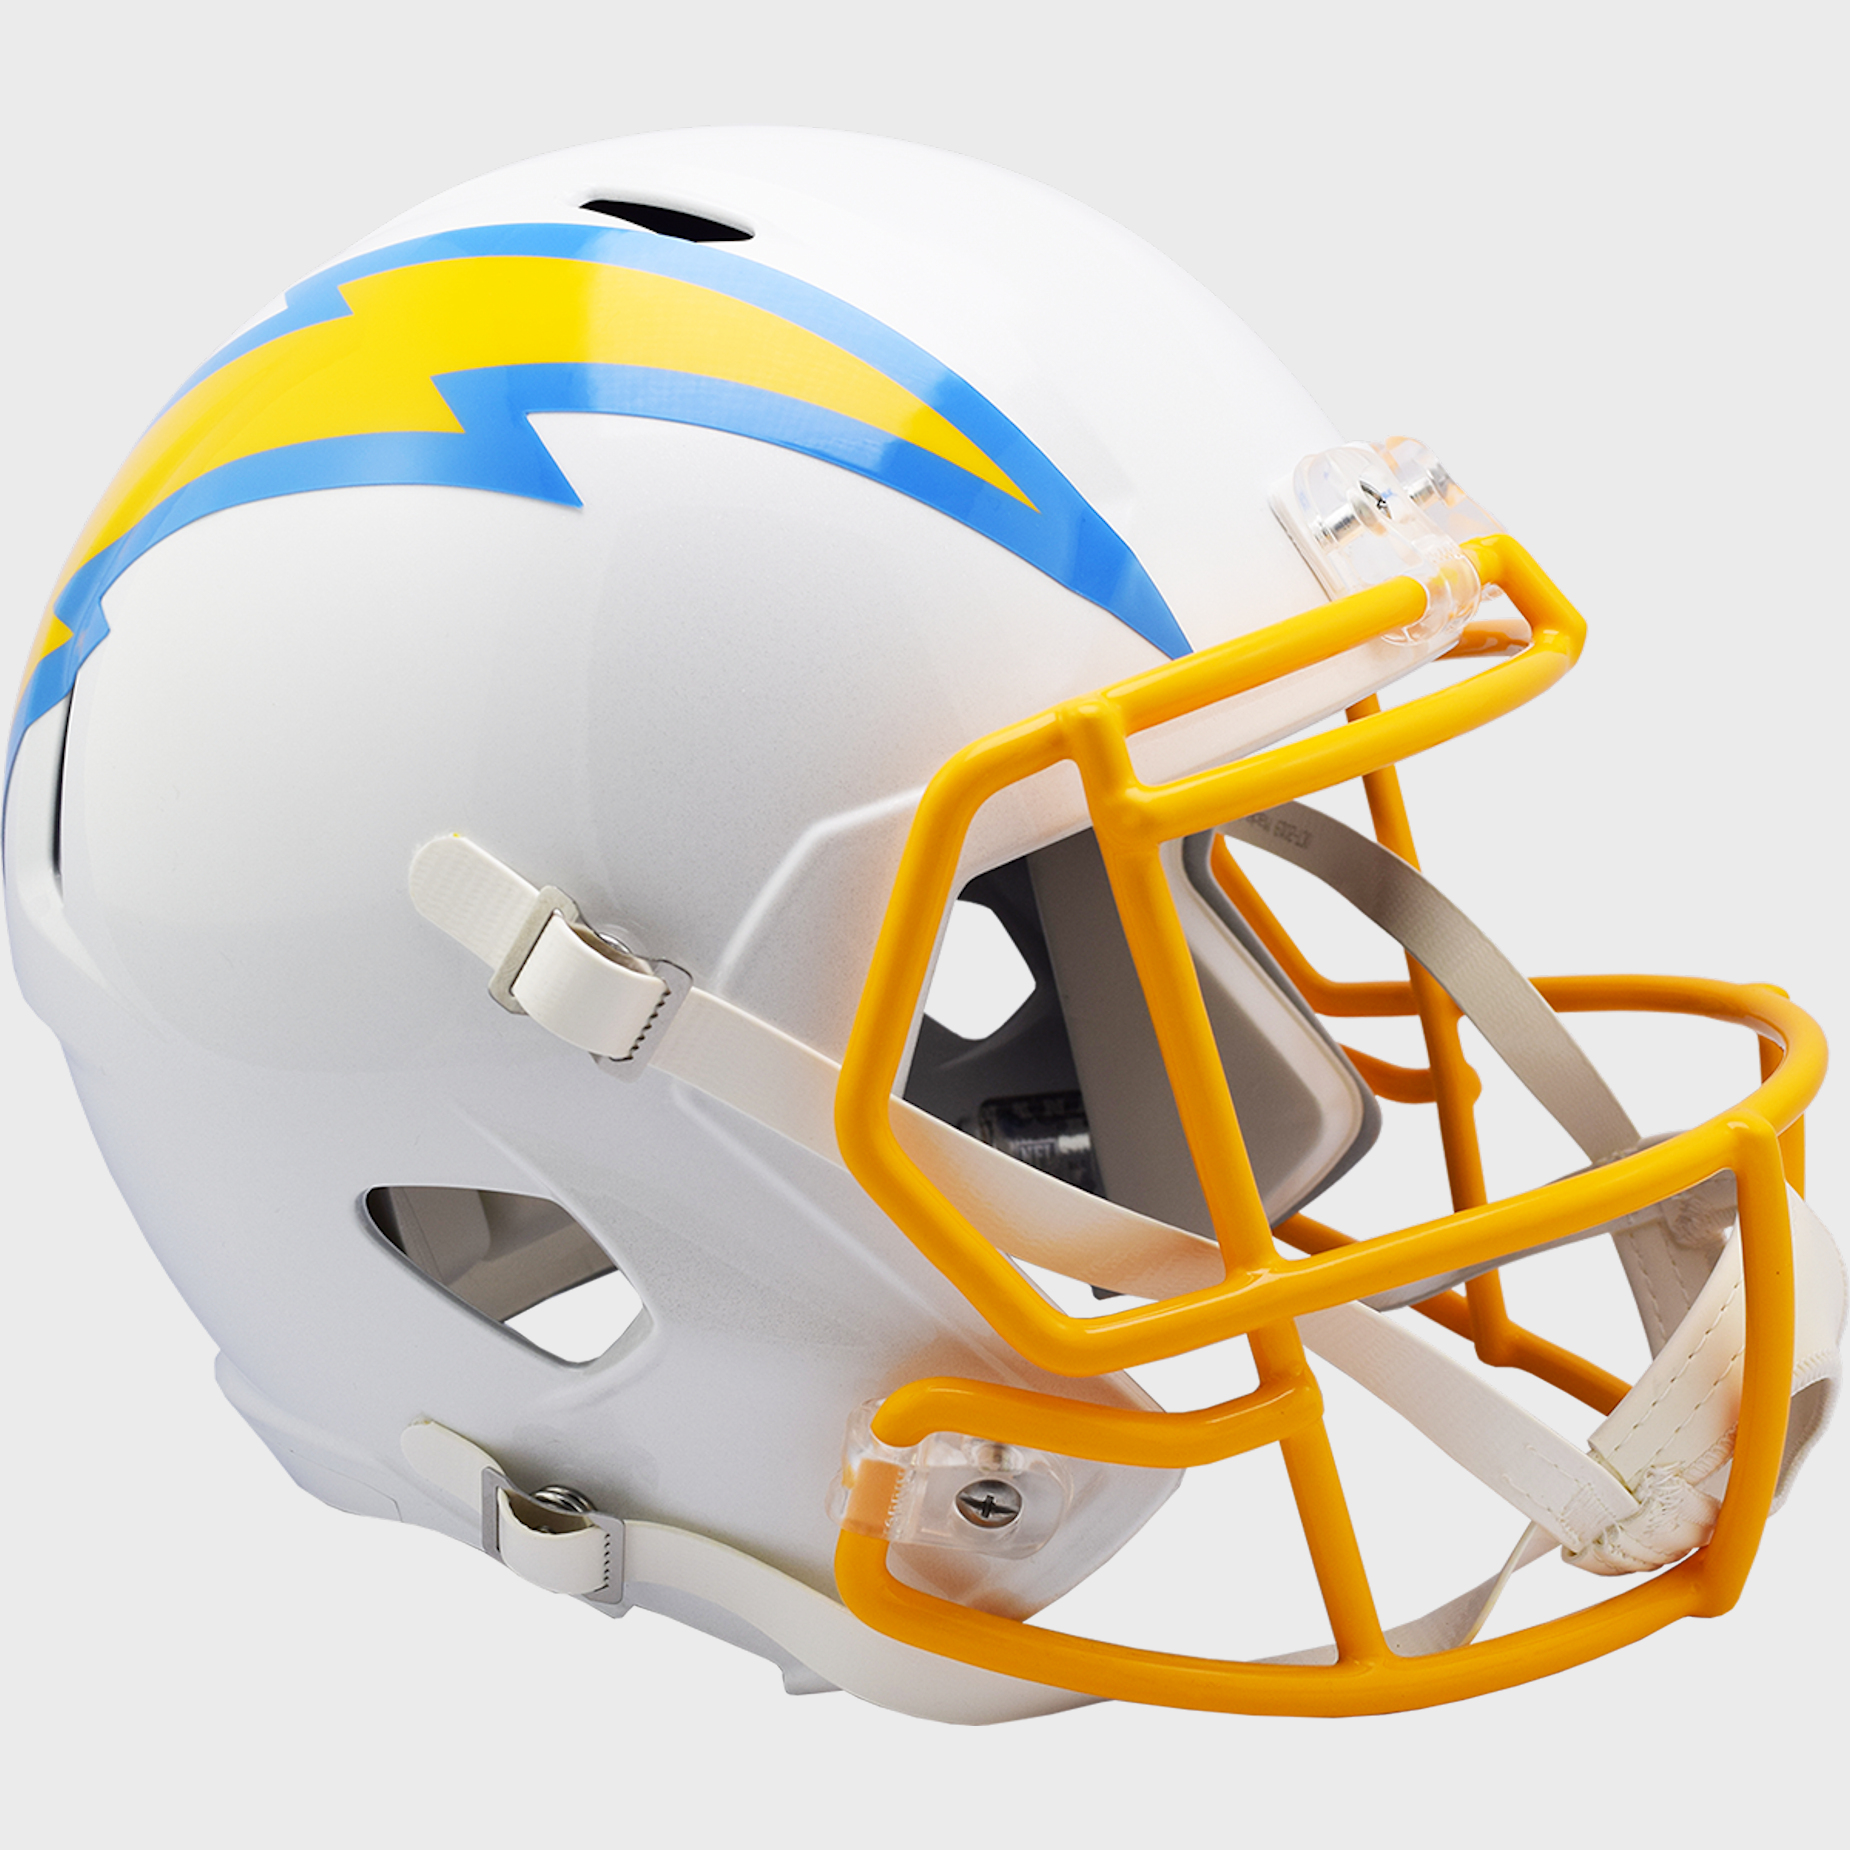 Los Angeles Chargers Speed Replica Football Helmet